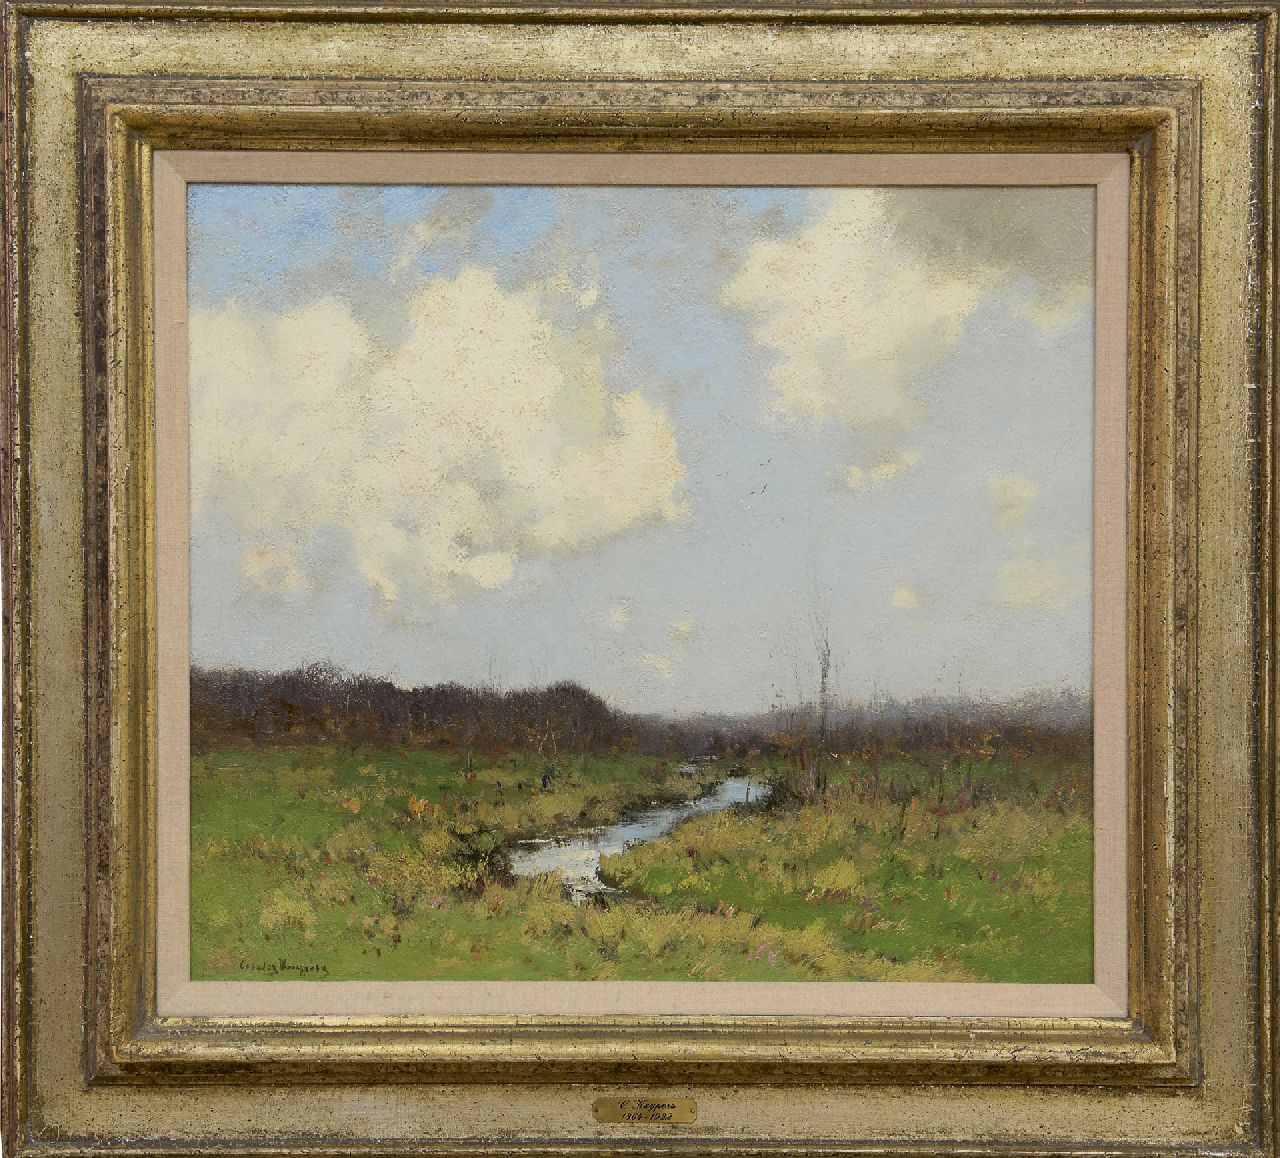 Kuijpers C.  | Cornelis Kuijpers | Paintings offered for sale | A pasture in summer, oil on canvas 40.0 x 44.8 cm, signed l.l.